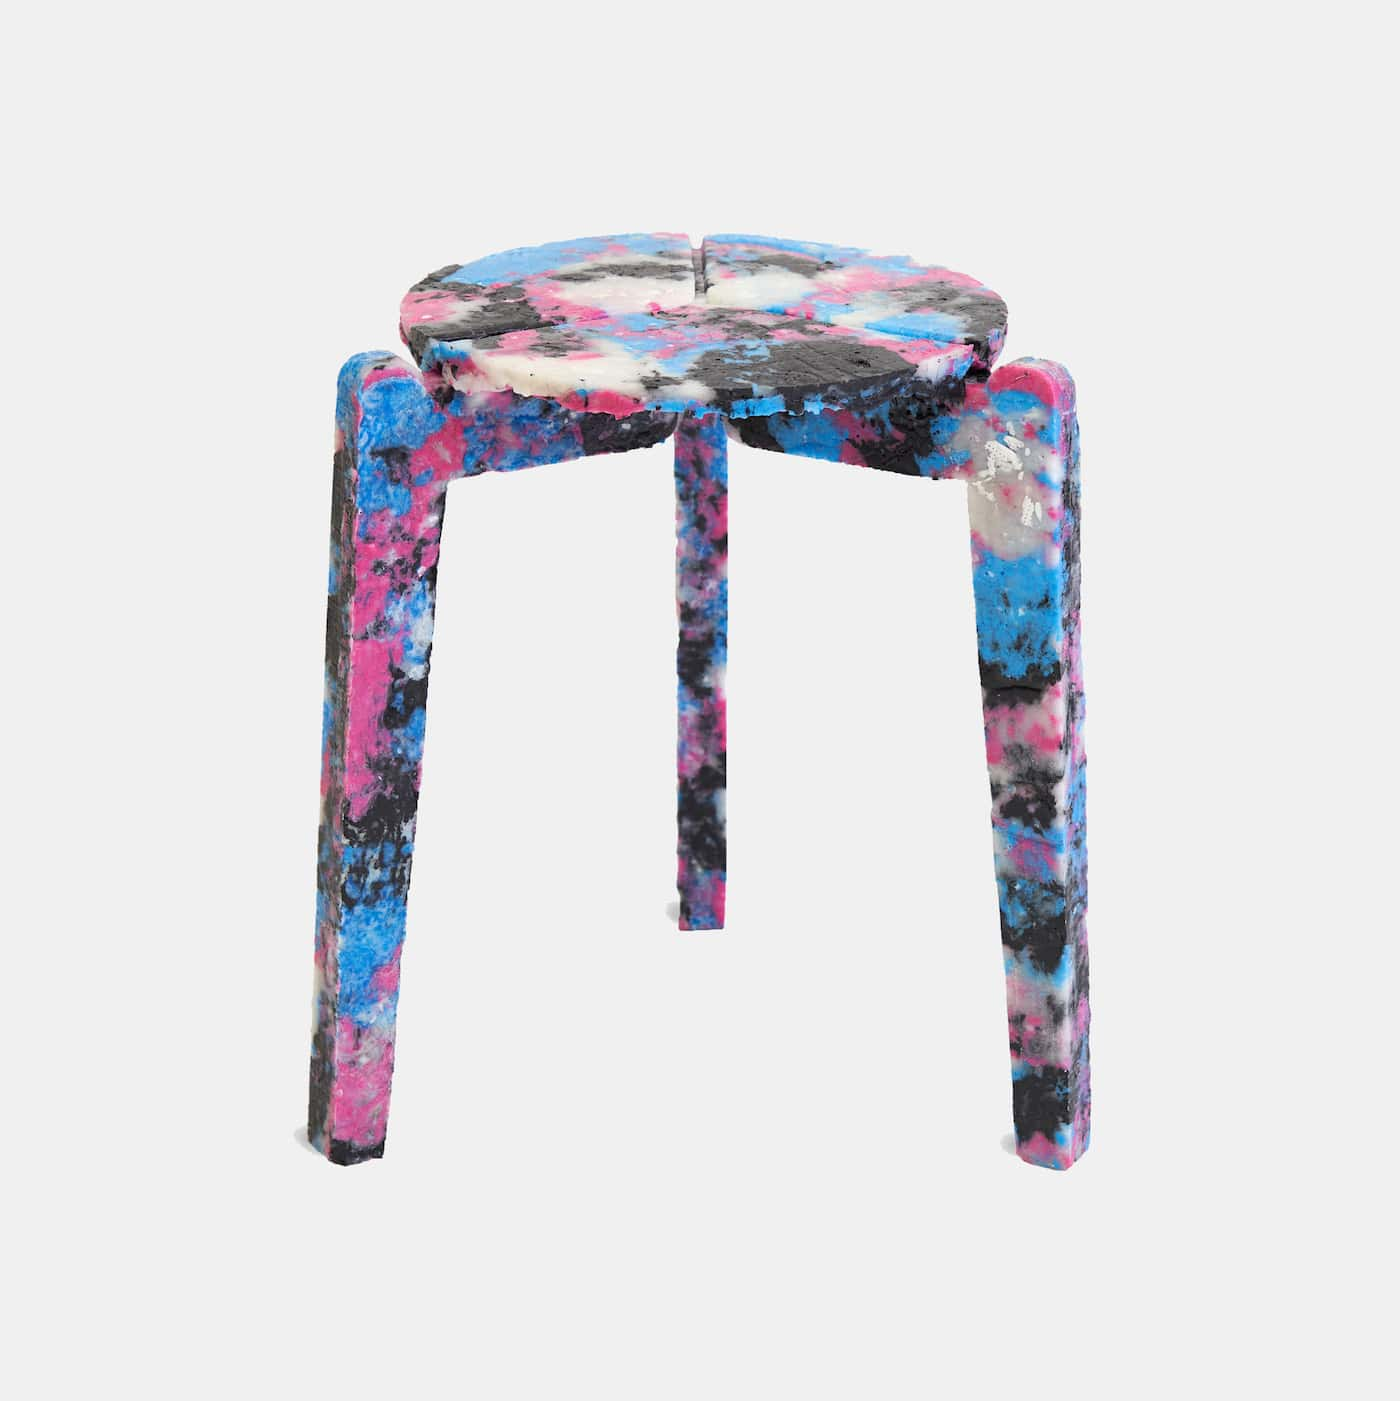 Multi-coloured stool made from recycled melted face masks